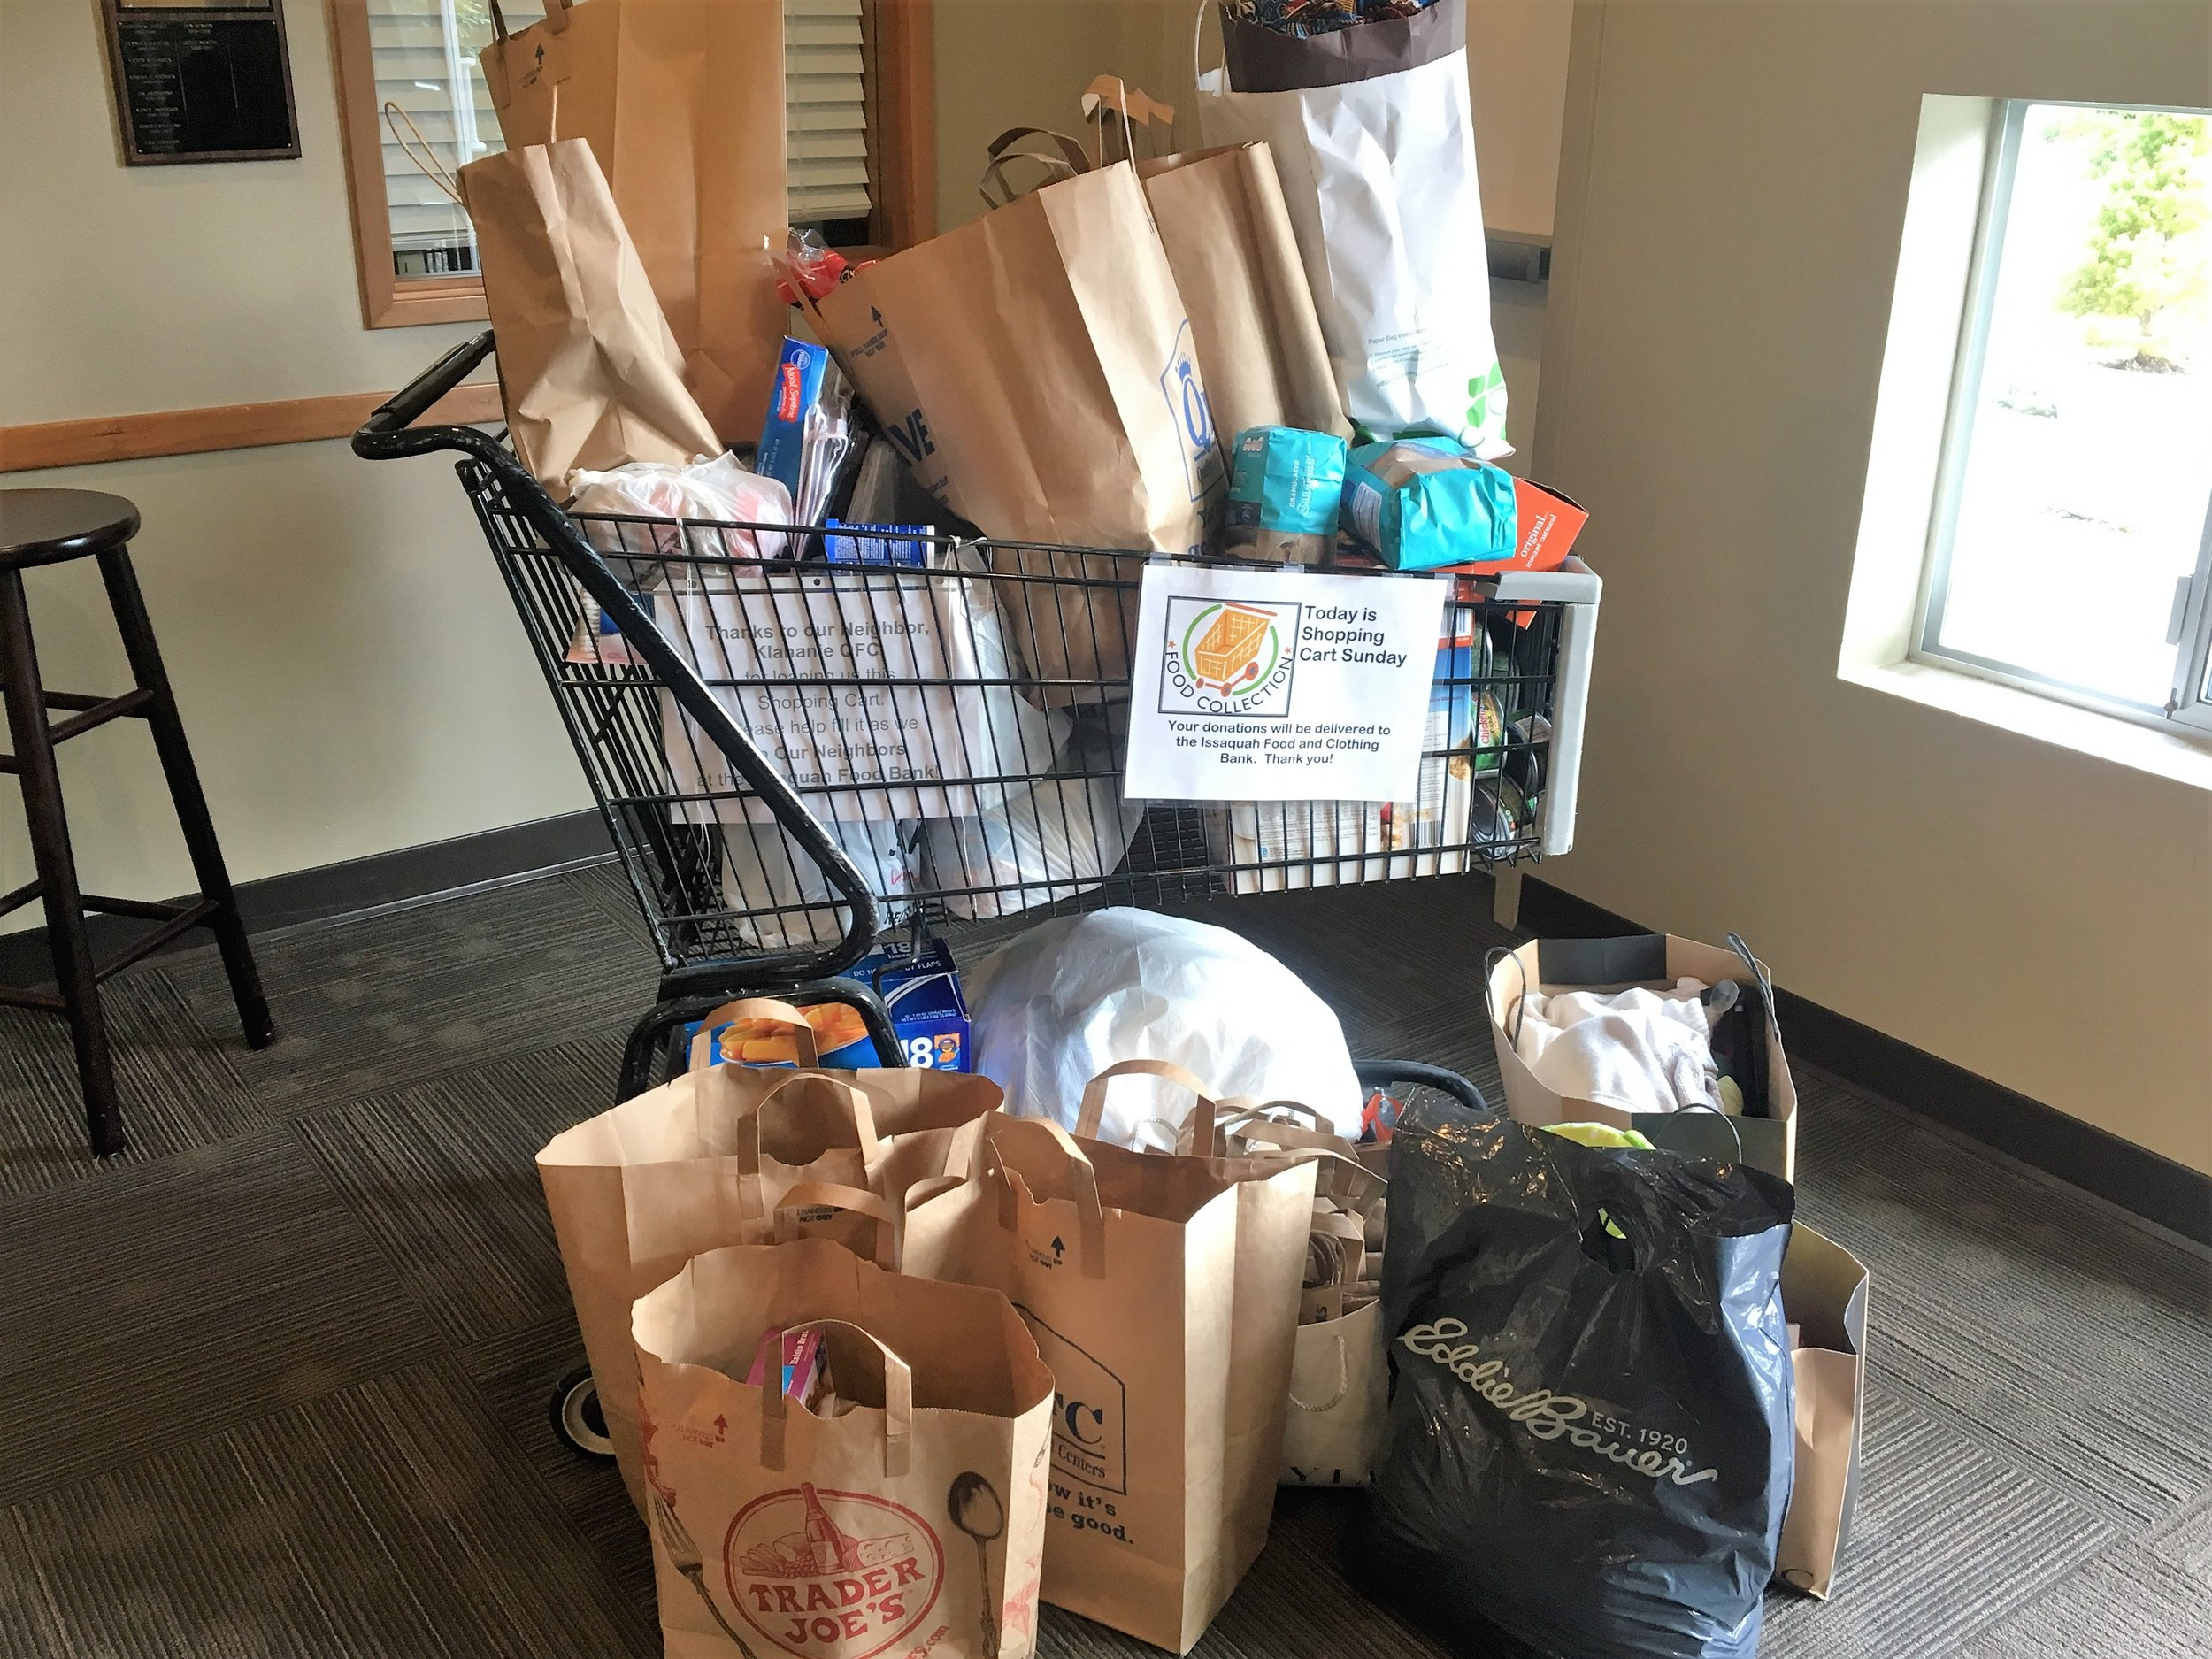 Issaquah Food and Clothing Bank collection at Shepherd of the Hills Lutheran Church in Sammamish, WA.